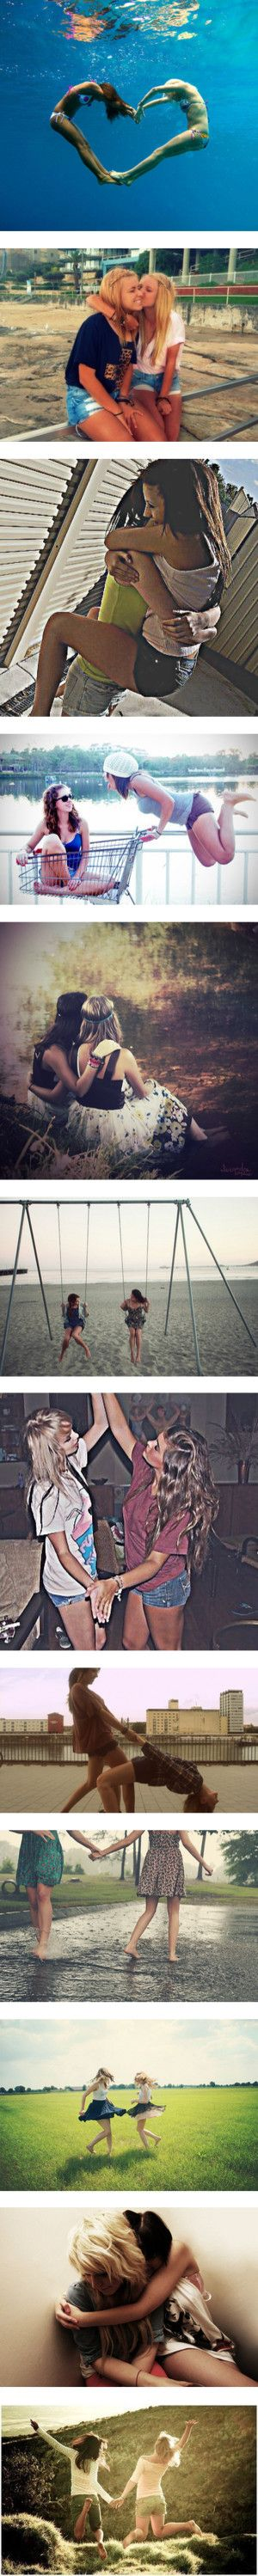 """""""what me and my best friends love to do"""" by jannethgarcia ❤ liked on Polyvore"""